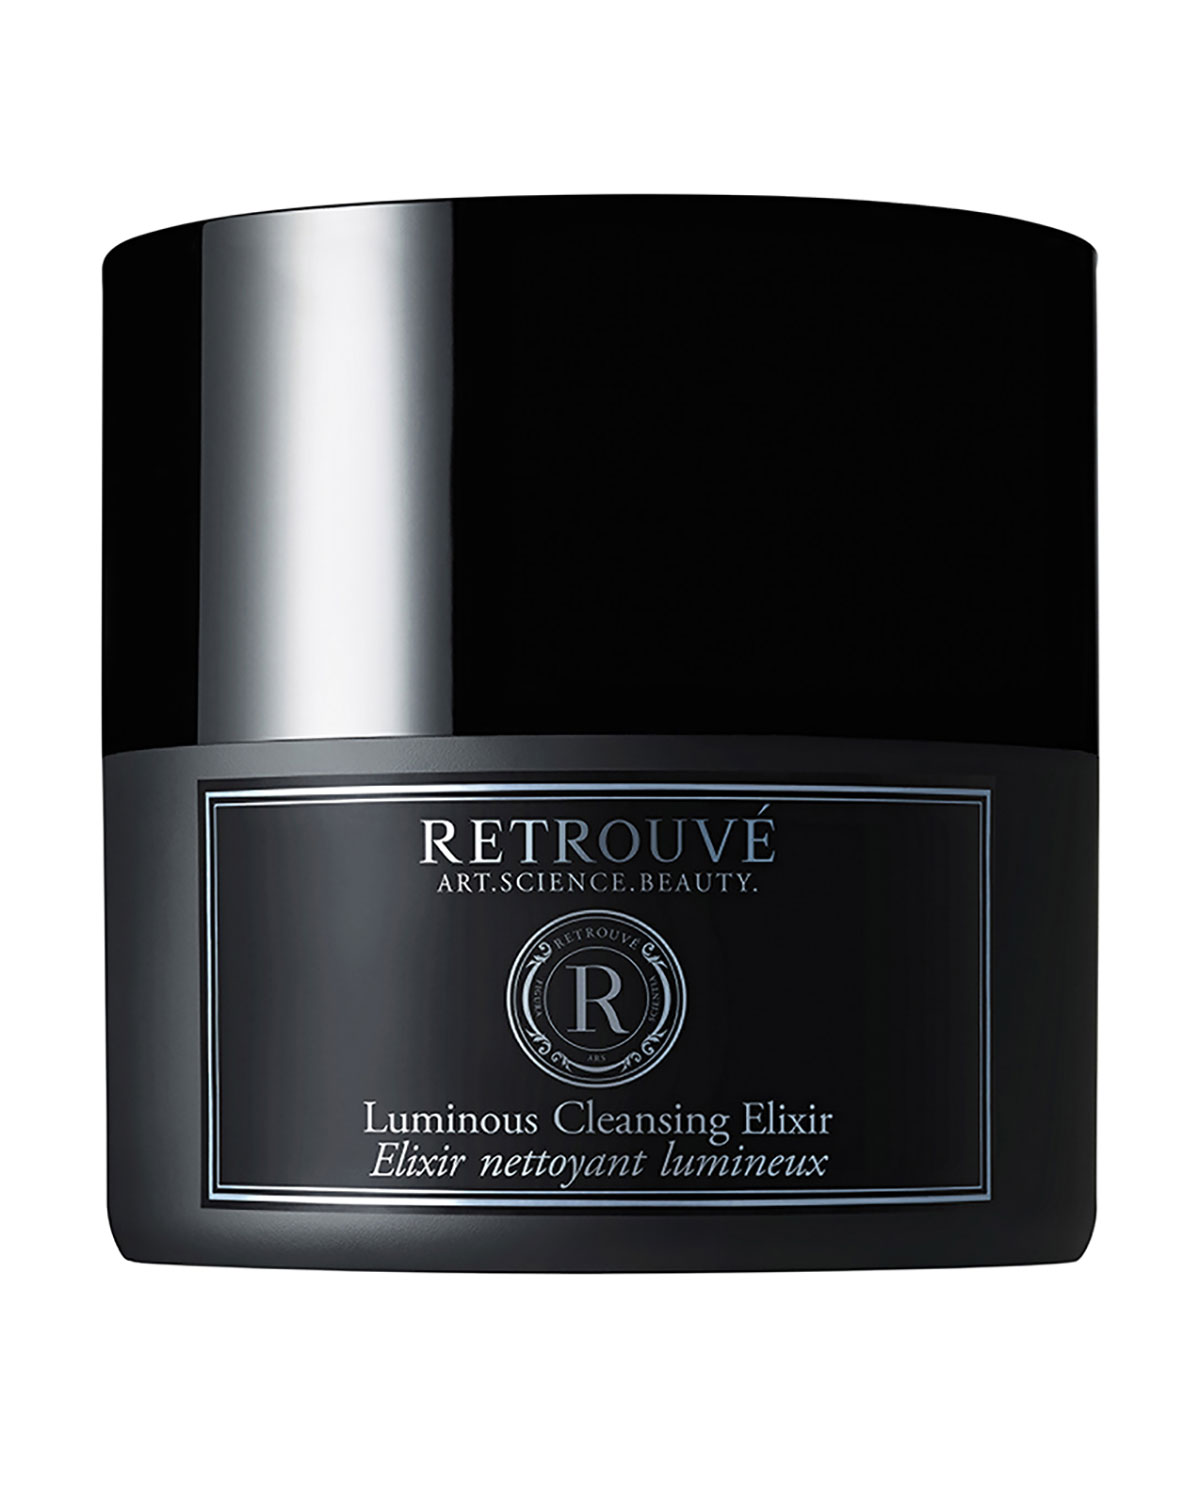 RETROUVE Luminous Cleansing Elixir, 1.0 Oz./ 30 Ml